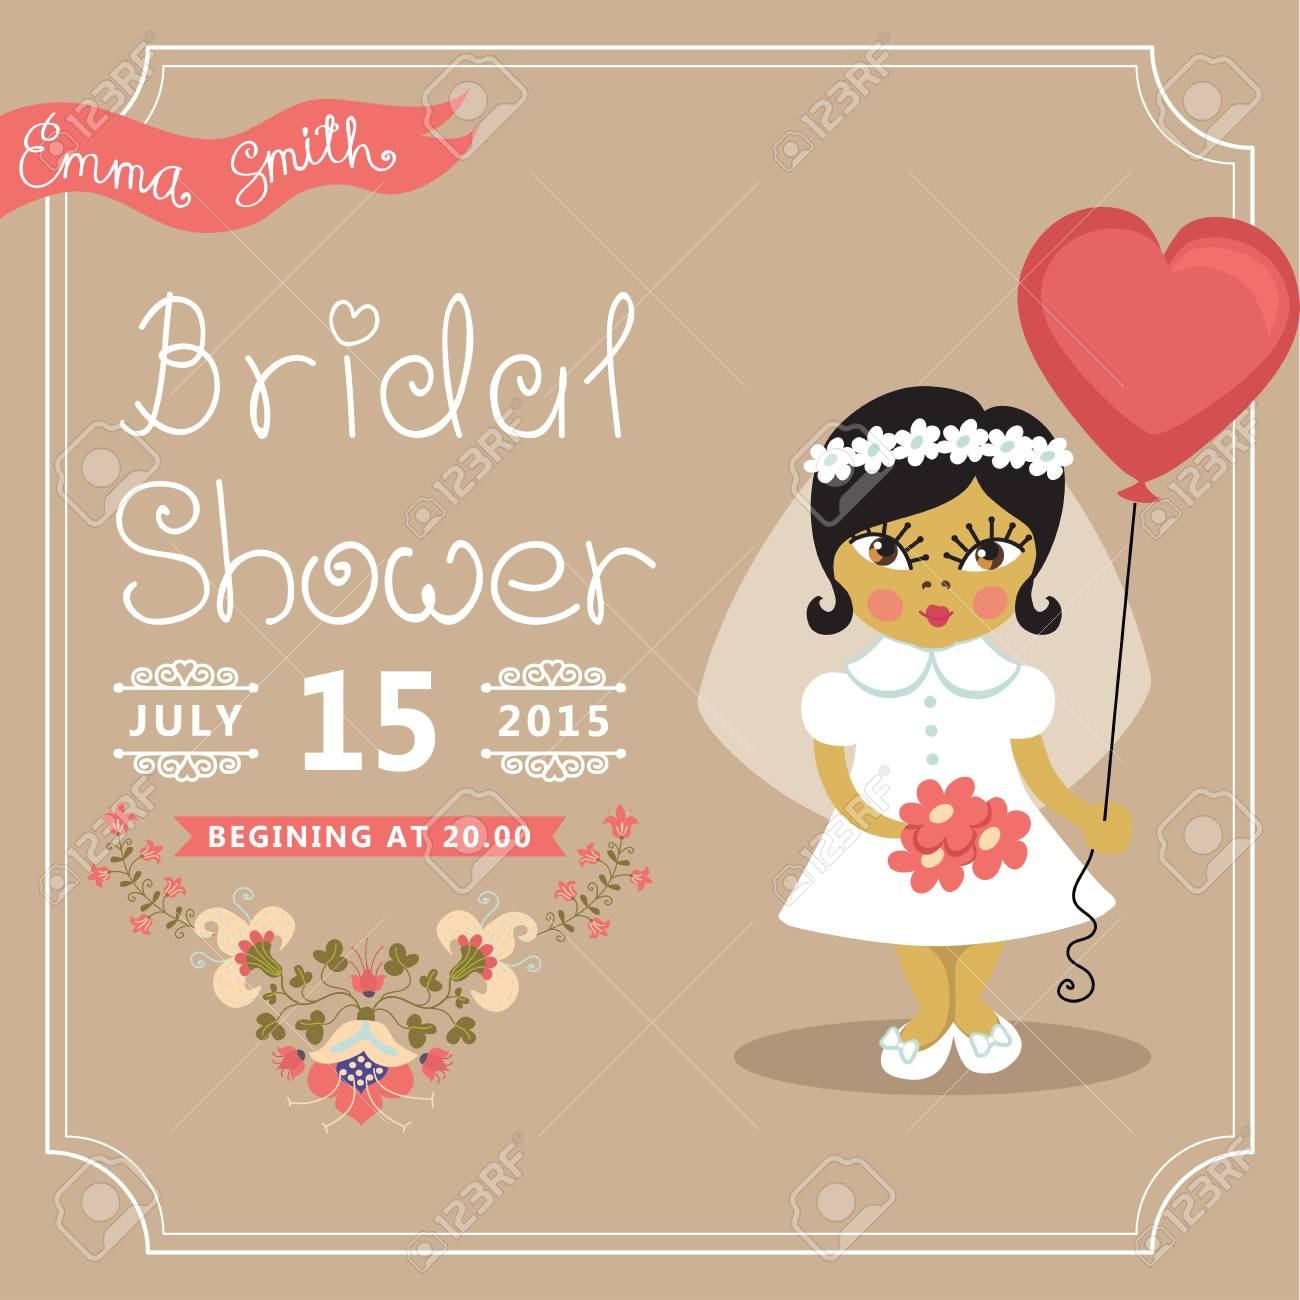 bridal shower invitation asian baby bride floral element stock vector 30221325